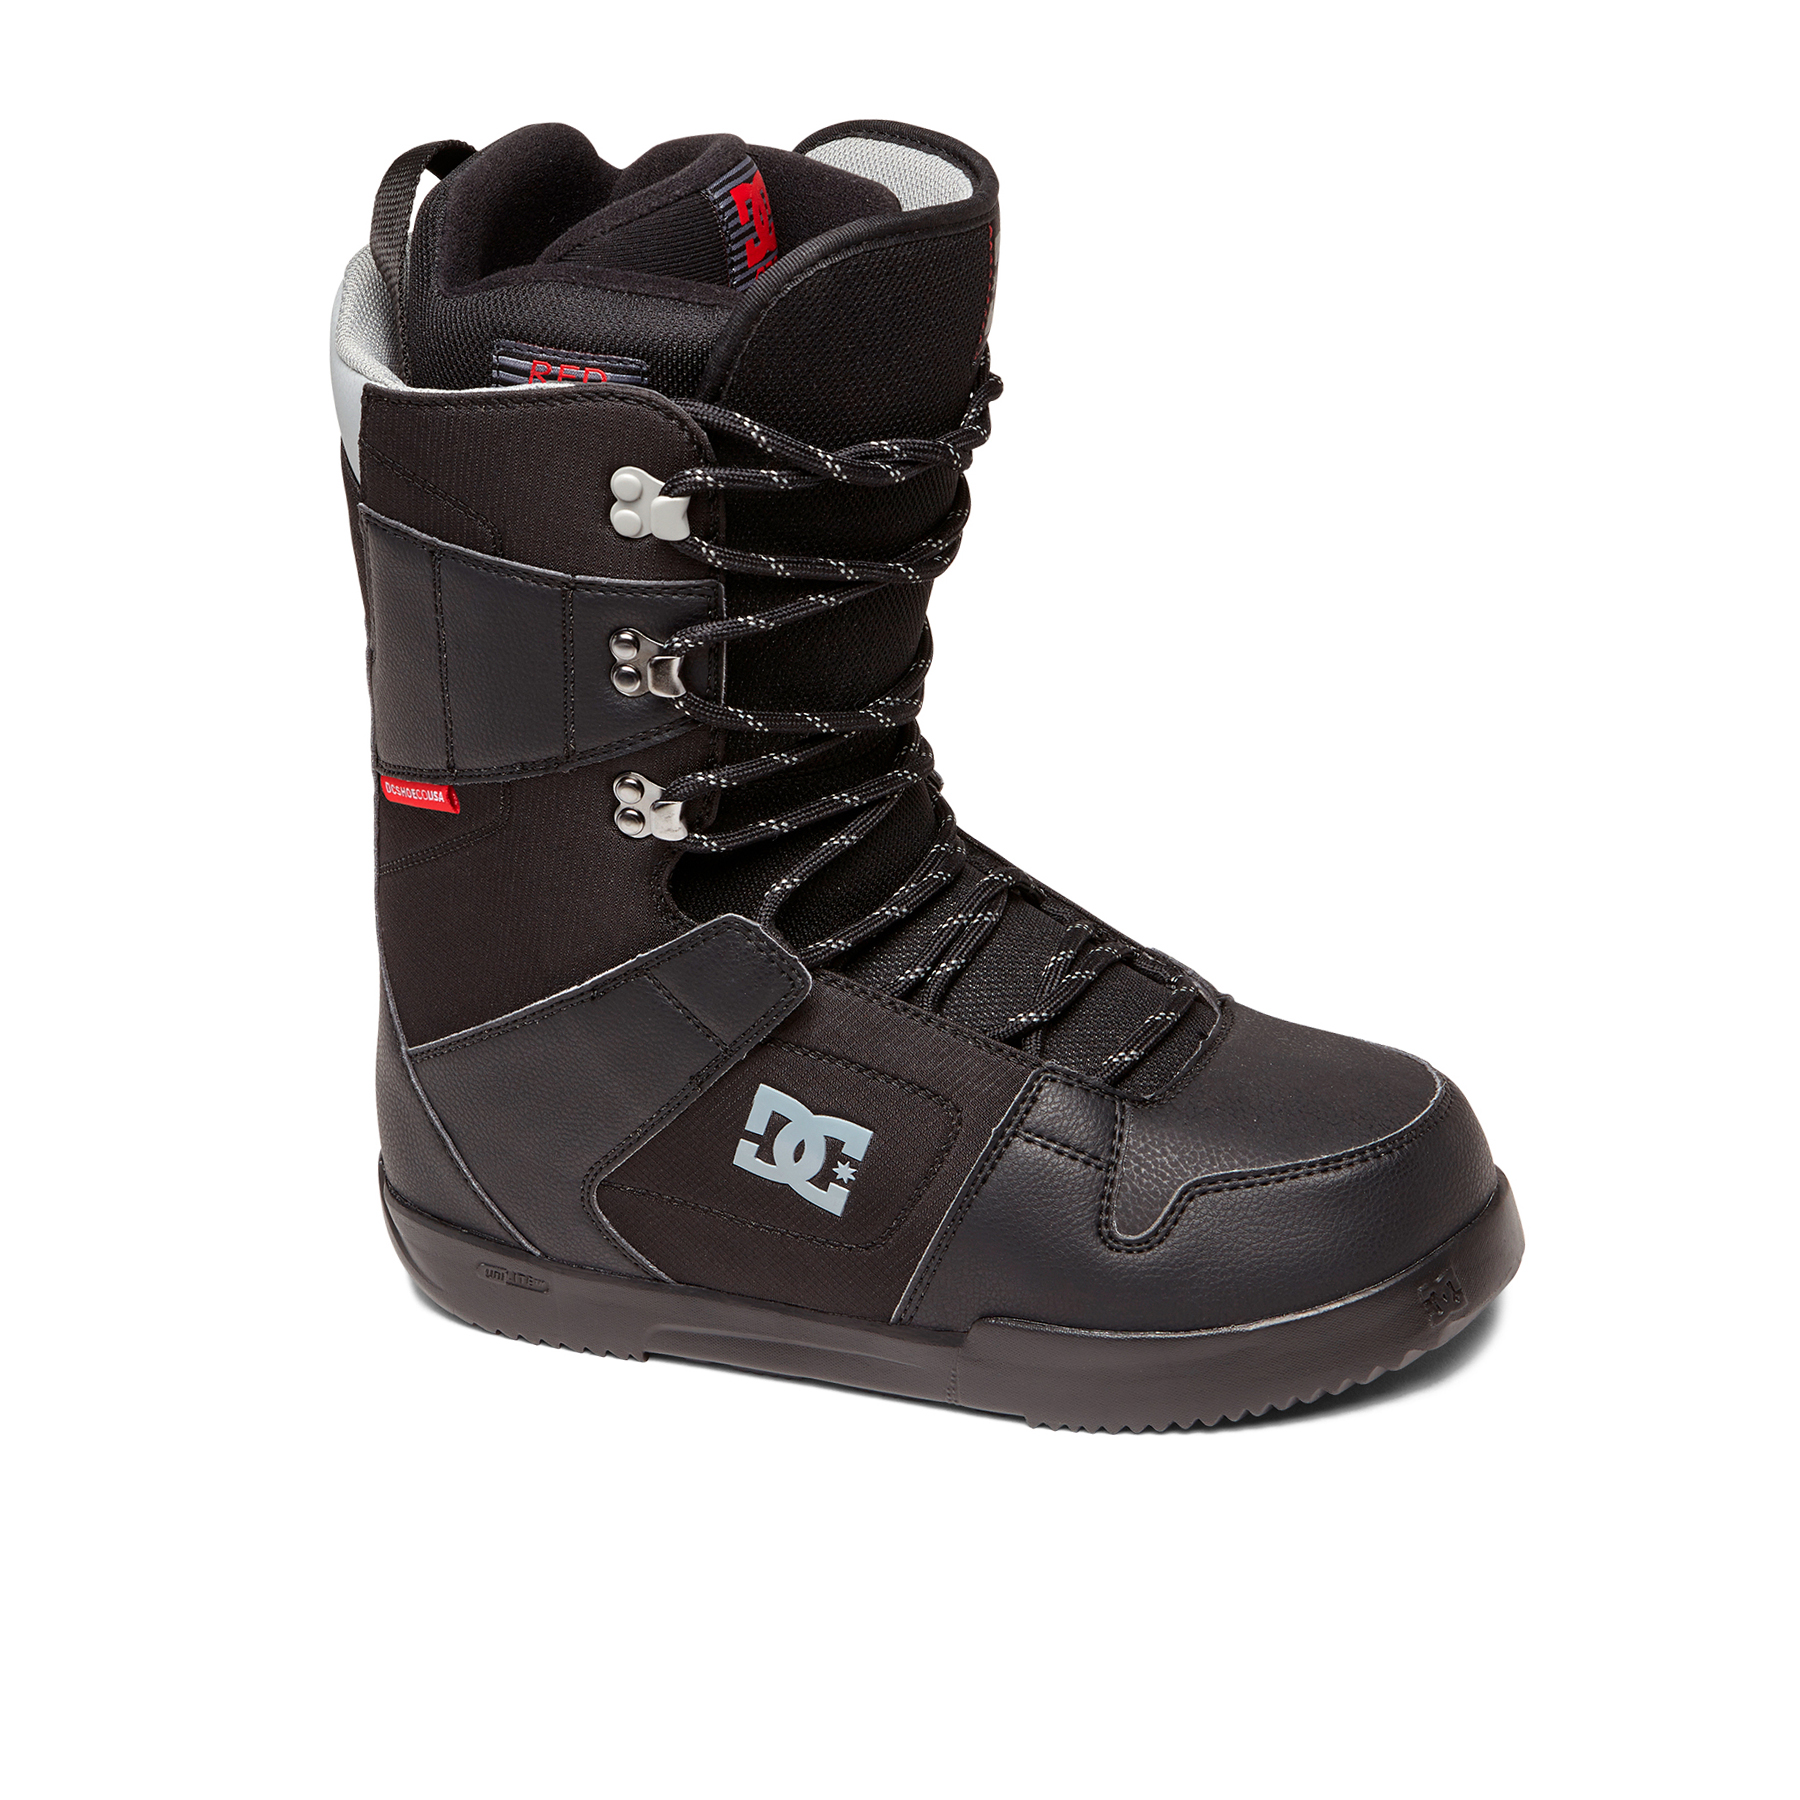 Botas de snowboard disponible de Surfdome